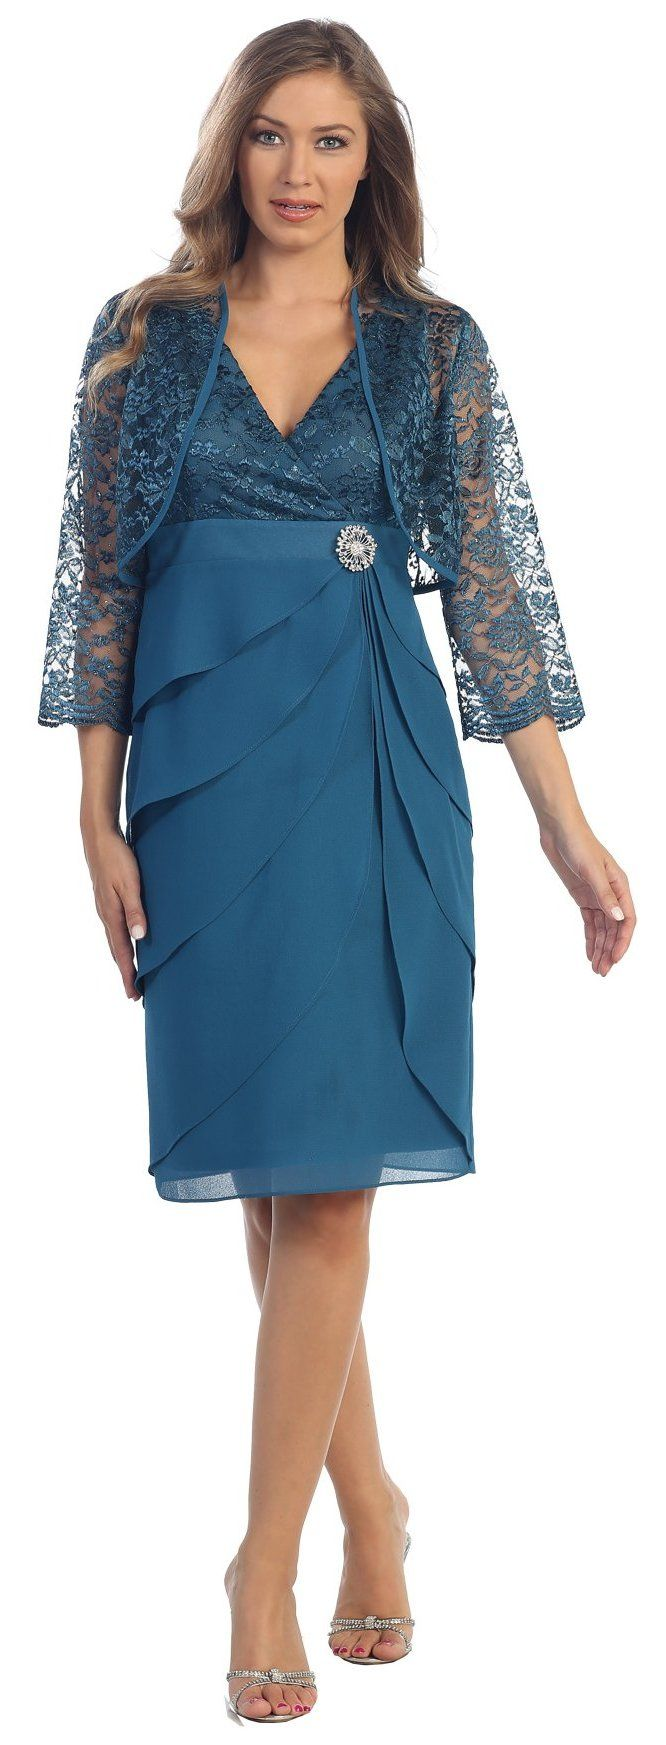 Magnificent Mother Of The Bride Tea Length Dresses With Jackets ...